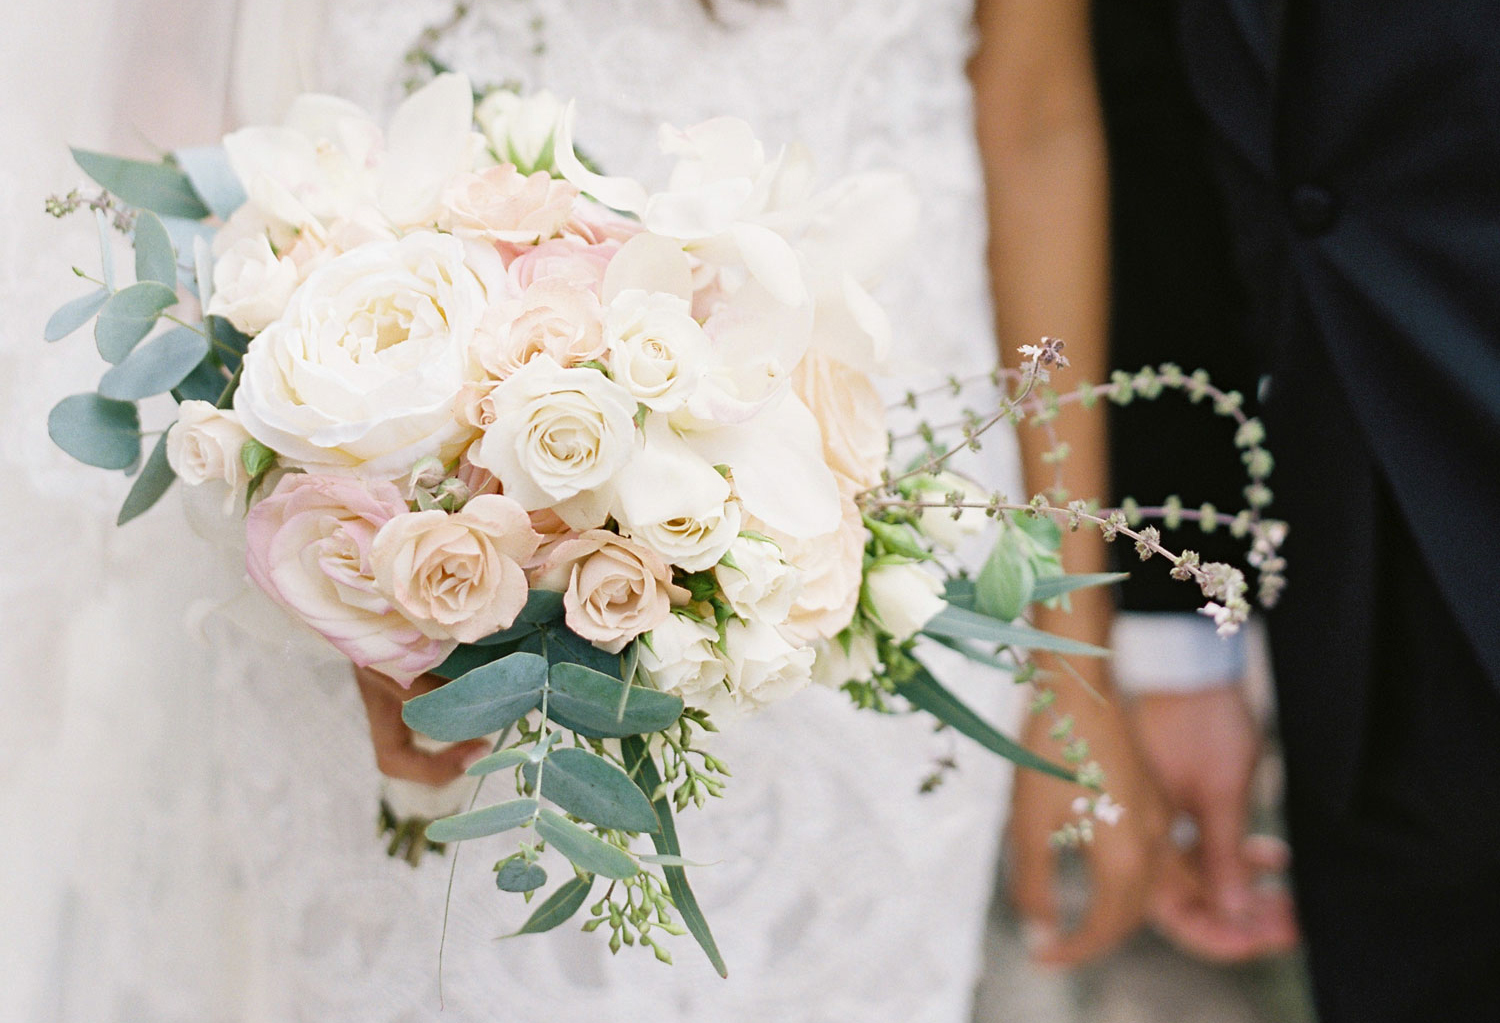 soft bridal bouquet with white and blush-tinged roses and eucalyptus leaves